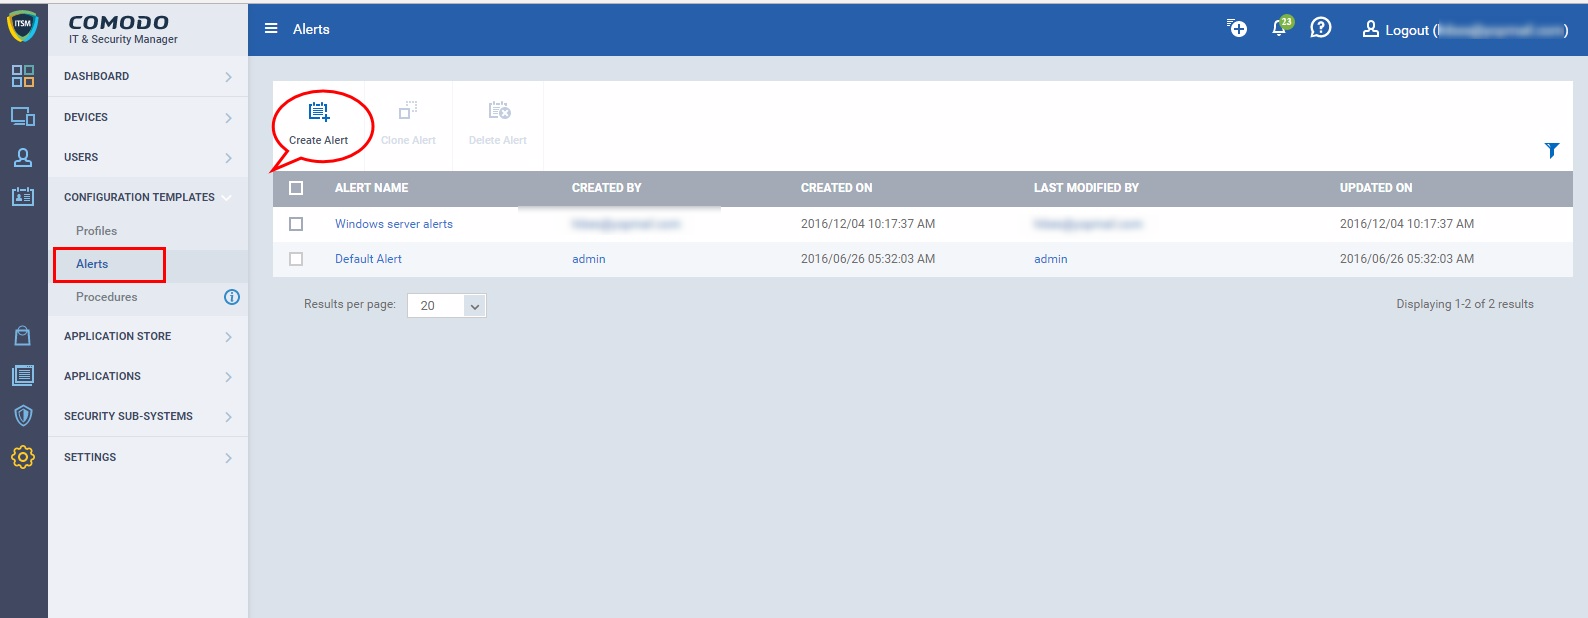 Configuring alerts in ITSM using Comodo One